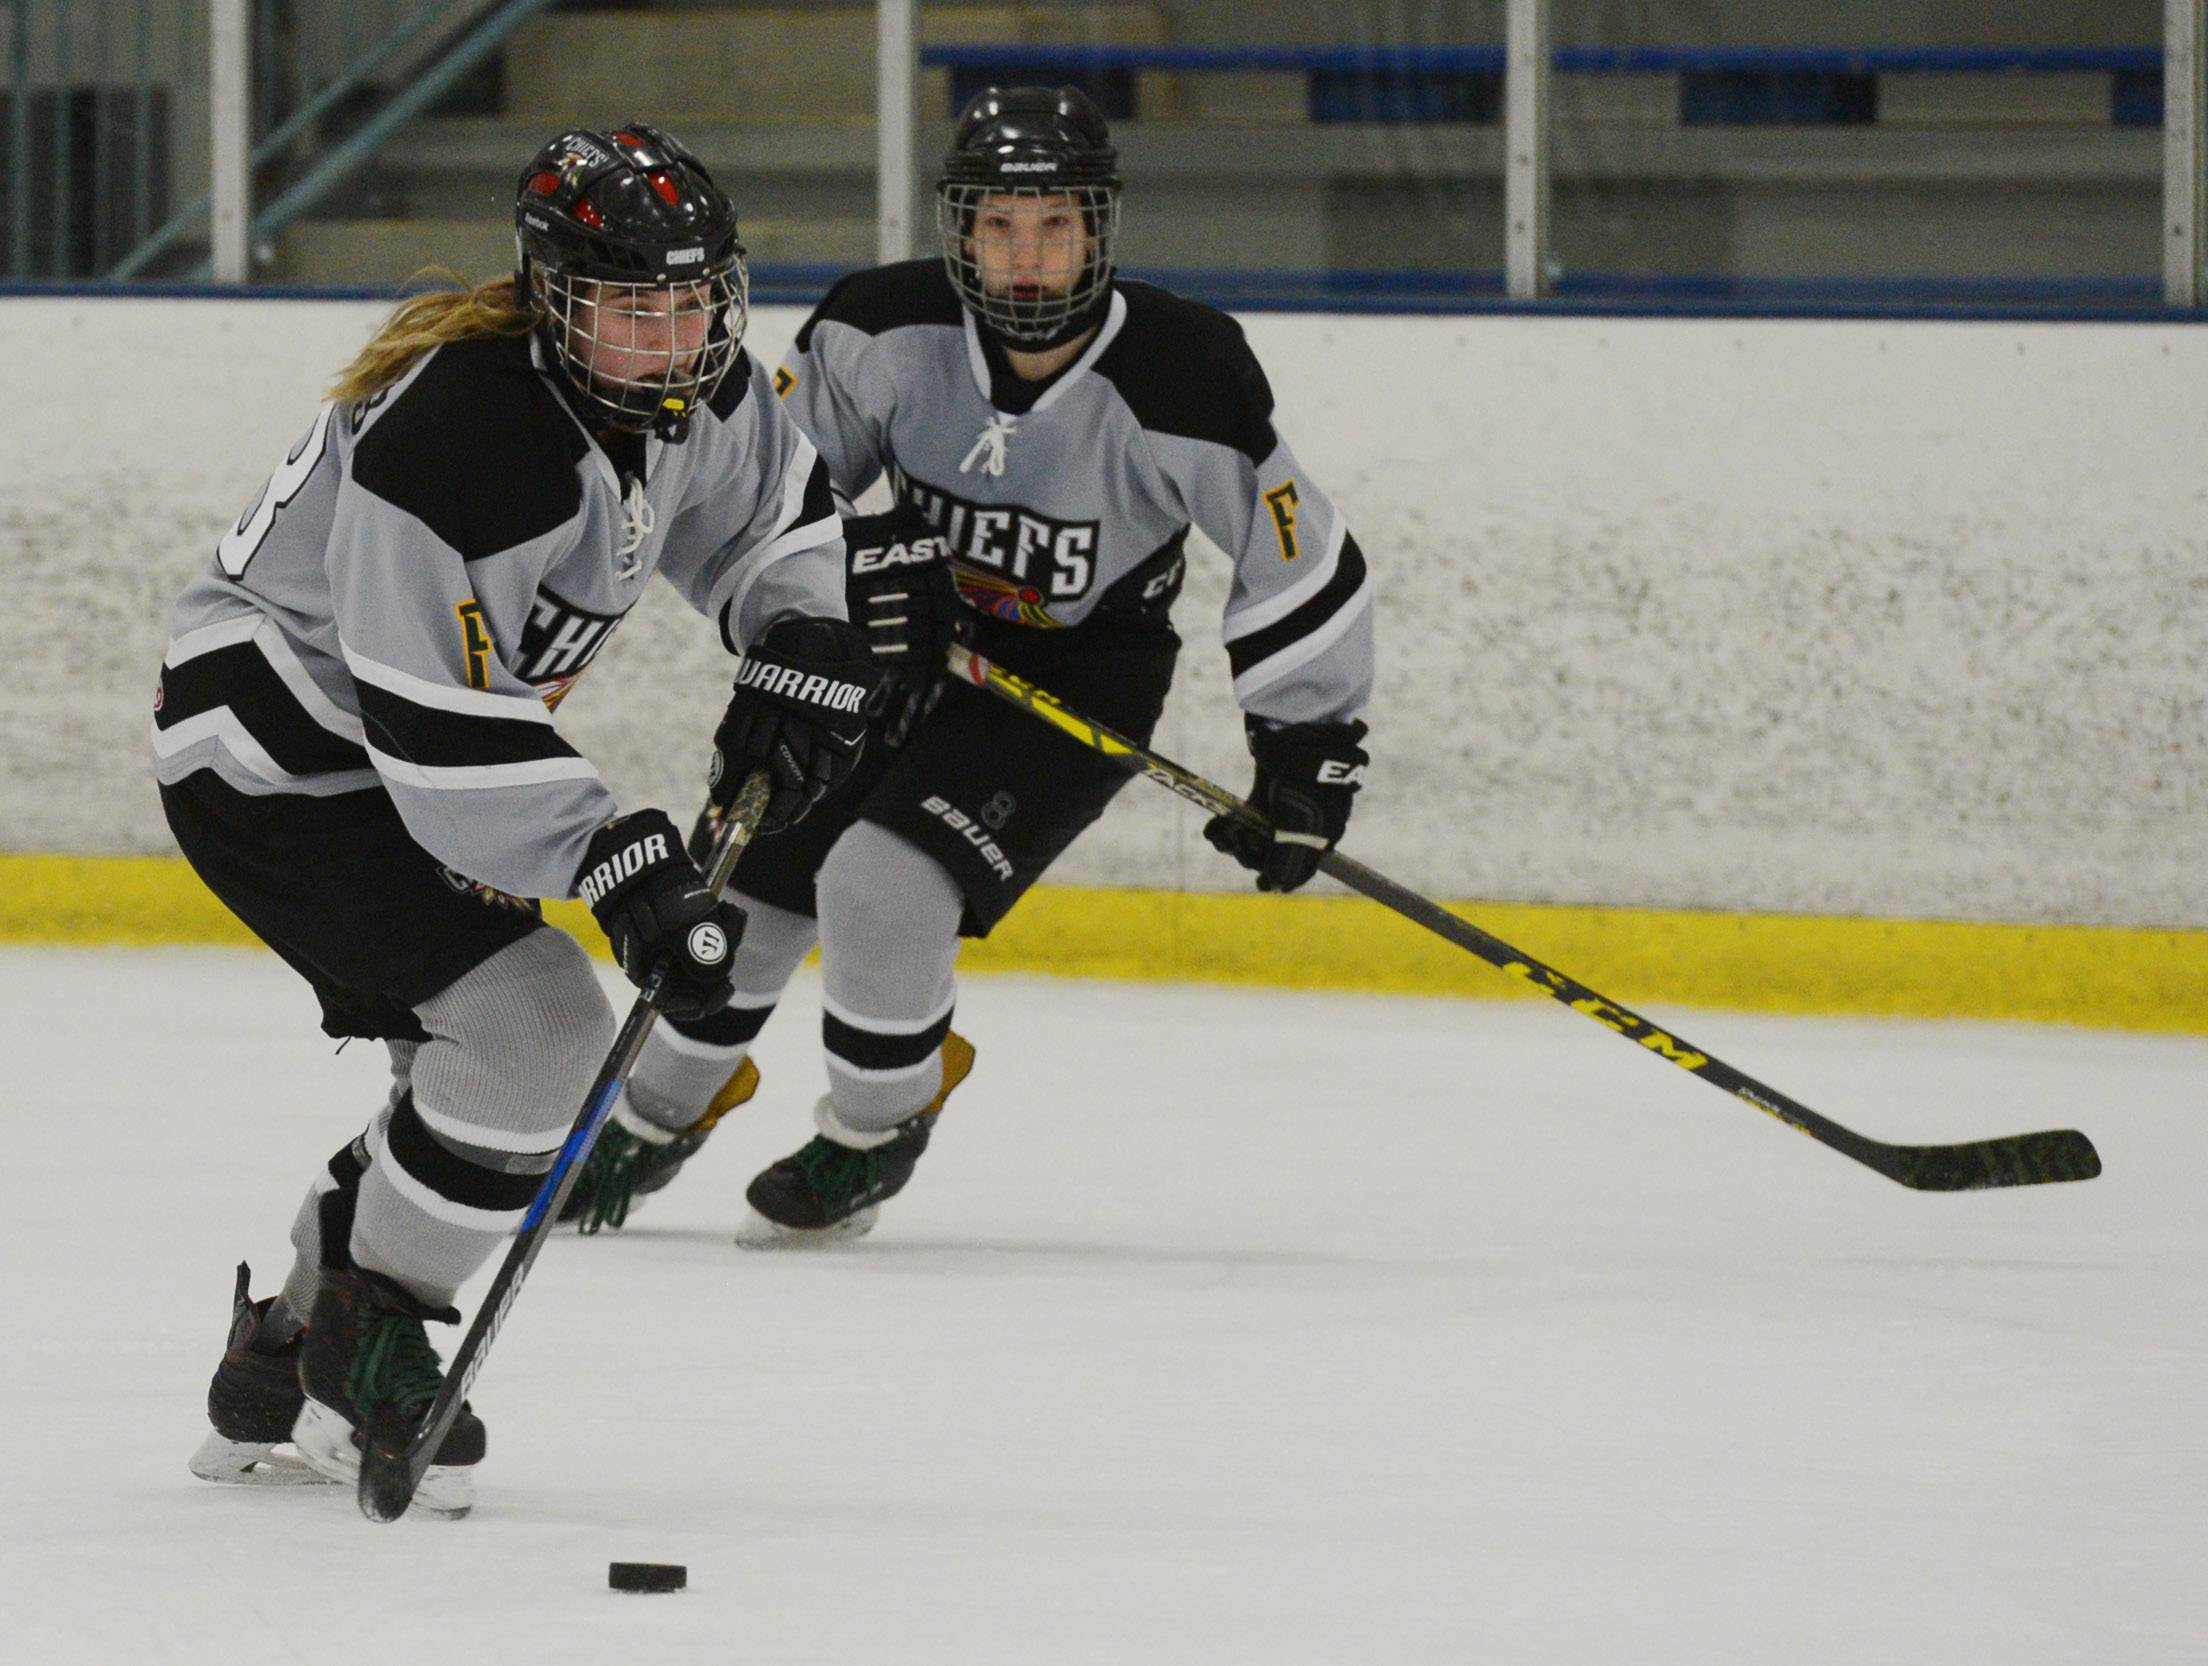 Girls are flocking to ice hockey across Illinois and the nation